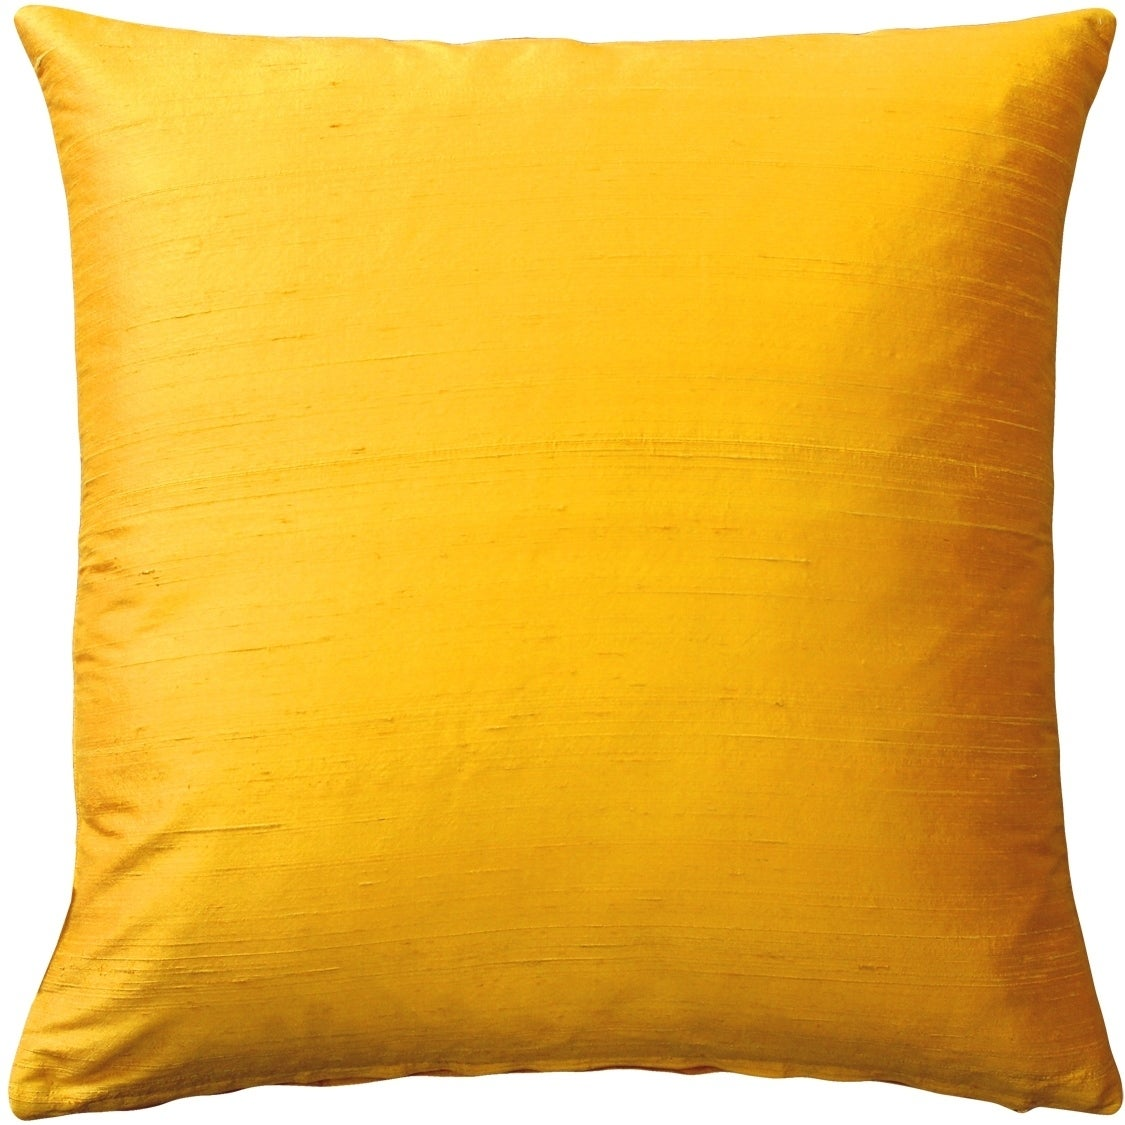 Yellow Throw Pillows Online At Our Best Decorative Accessories Deals